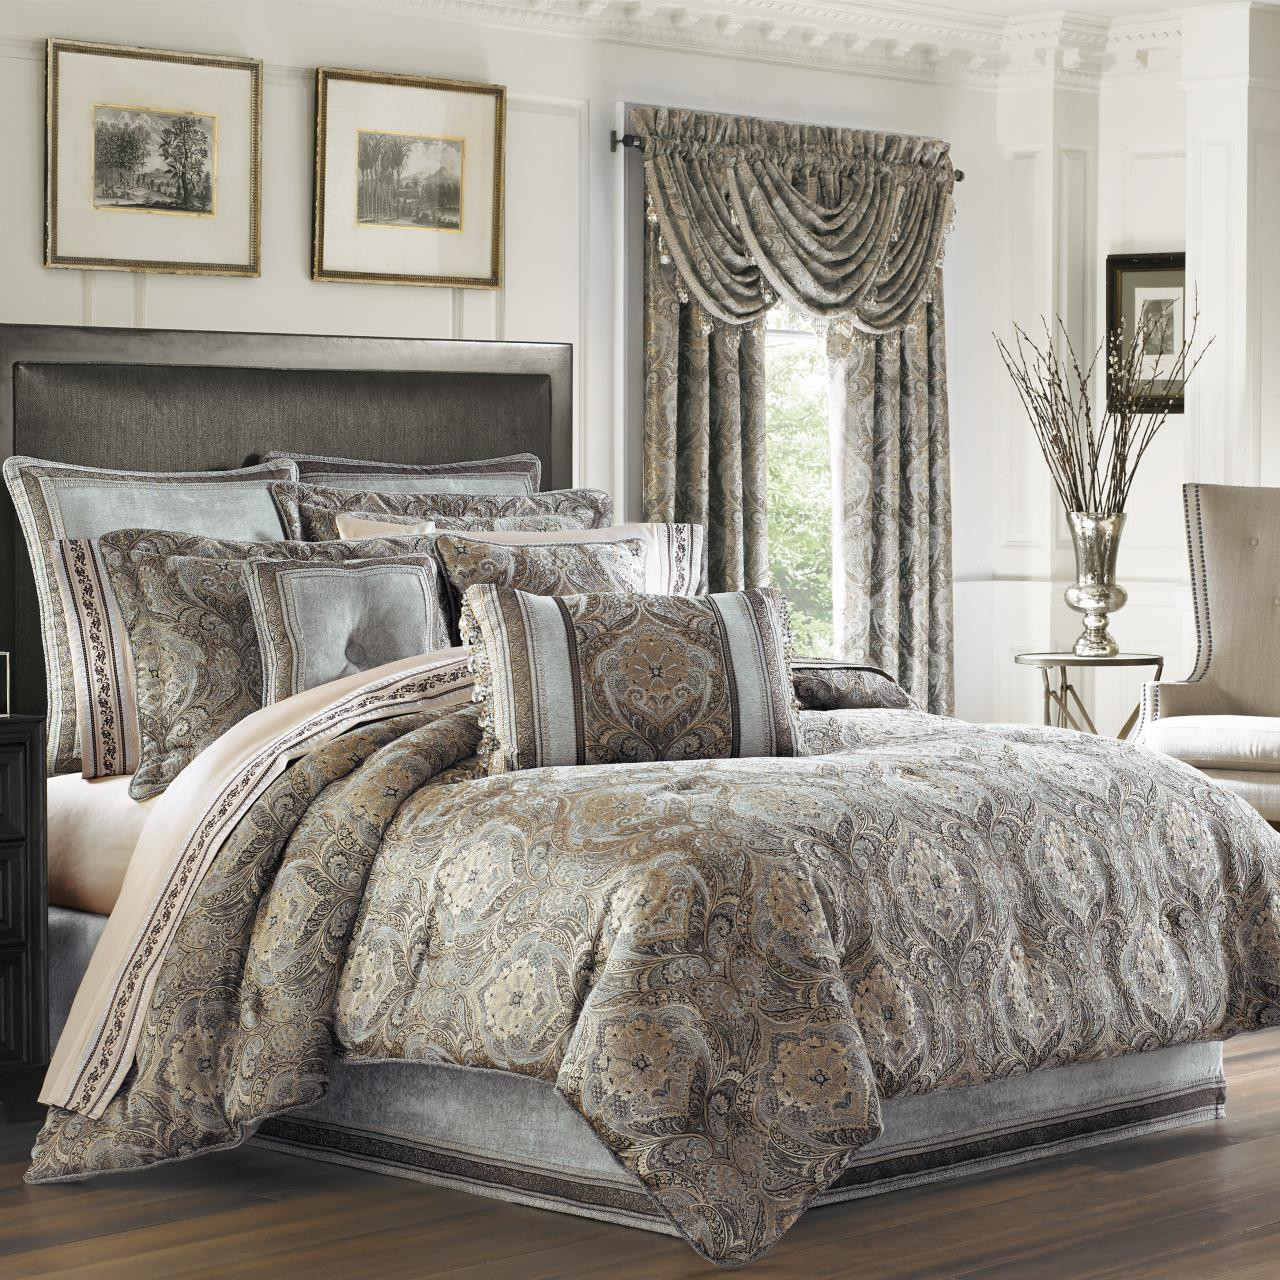 Provence Bedding Collection -